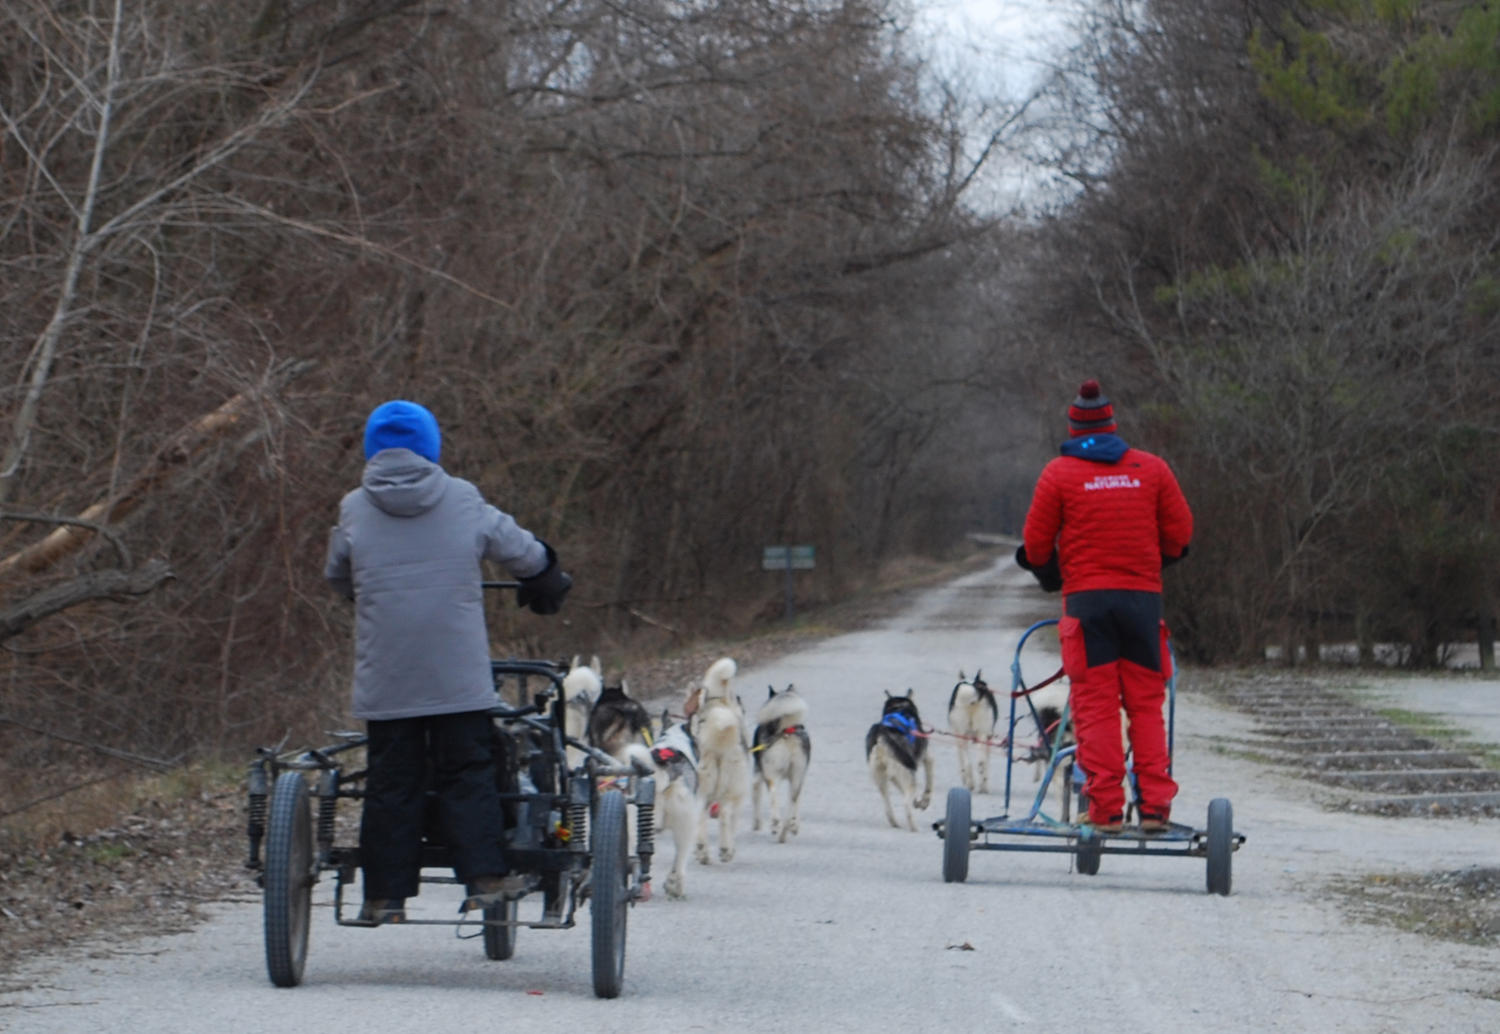 Unlikely Tale Meet The Rescued Huskies Who Practice For Sled Dog Snow Hd Wiring Harness In Fall And Winter Breakaway Siberians Team Trains Several Times A Week On Katy Trail Near Weldon Spring